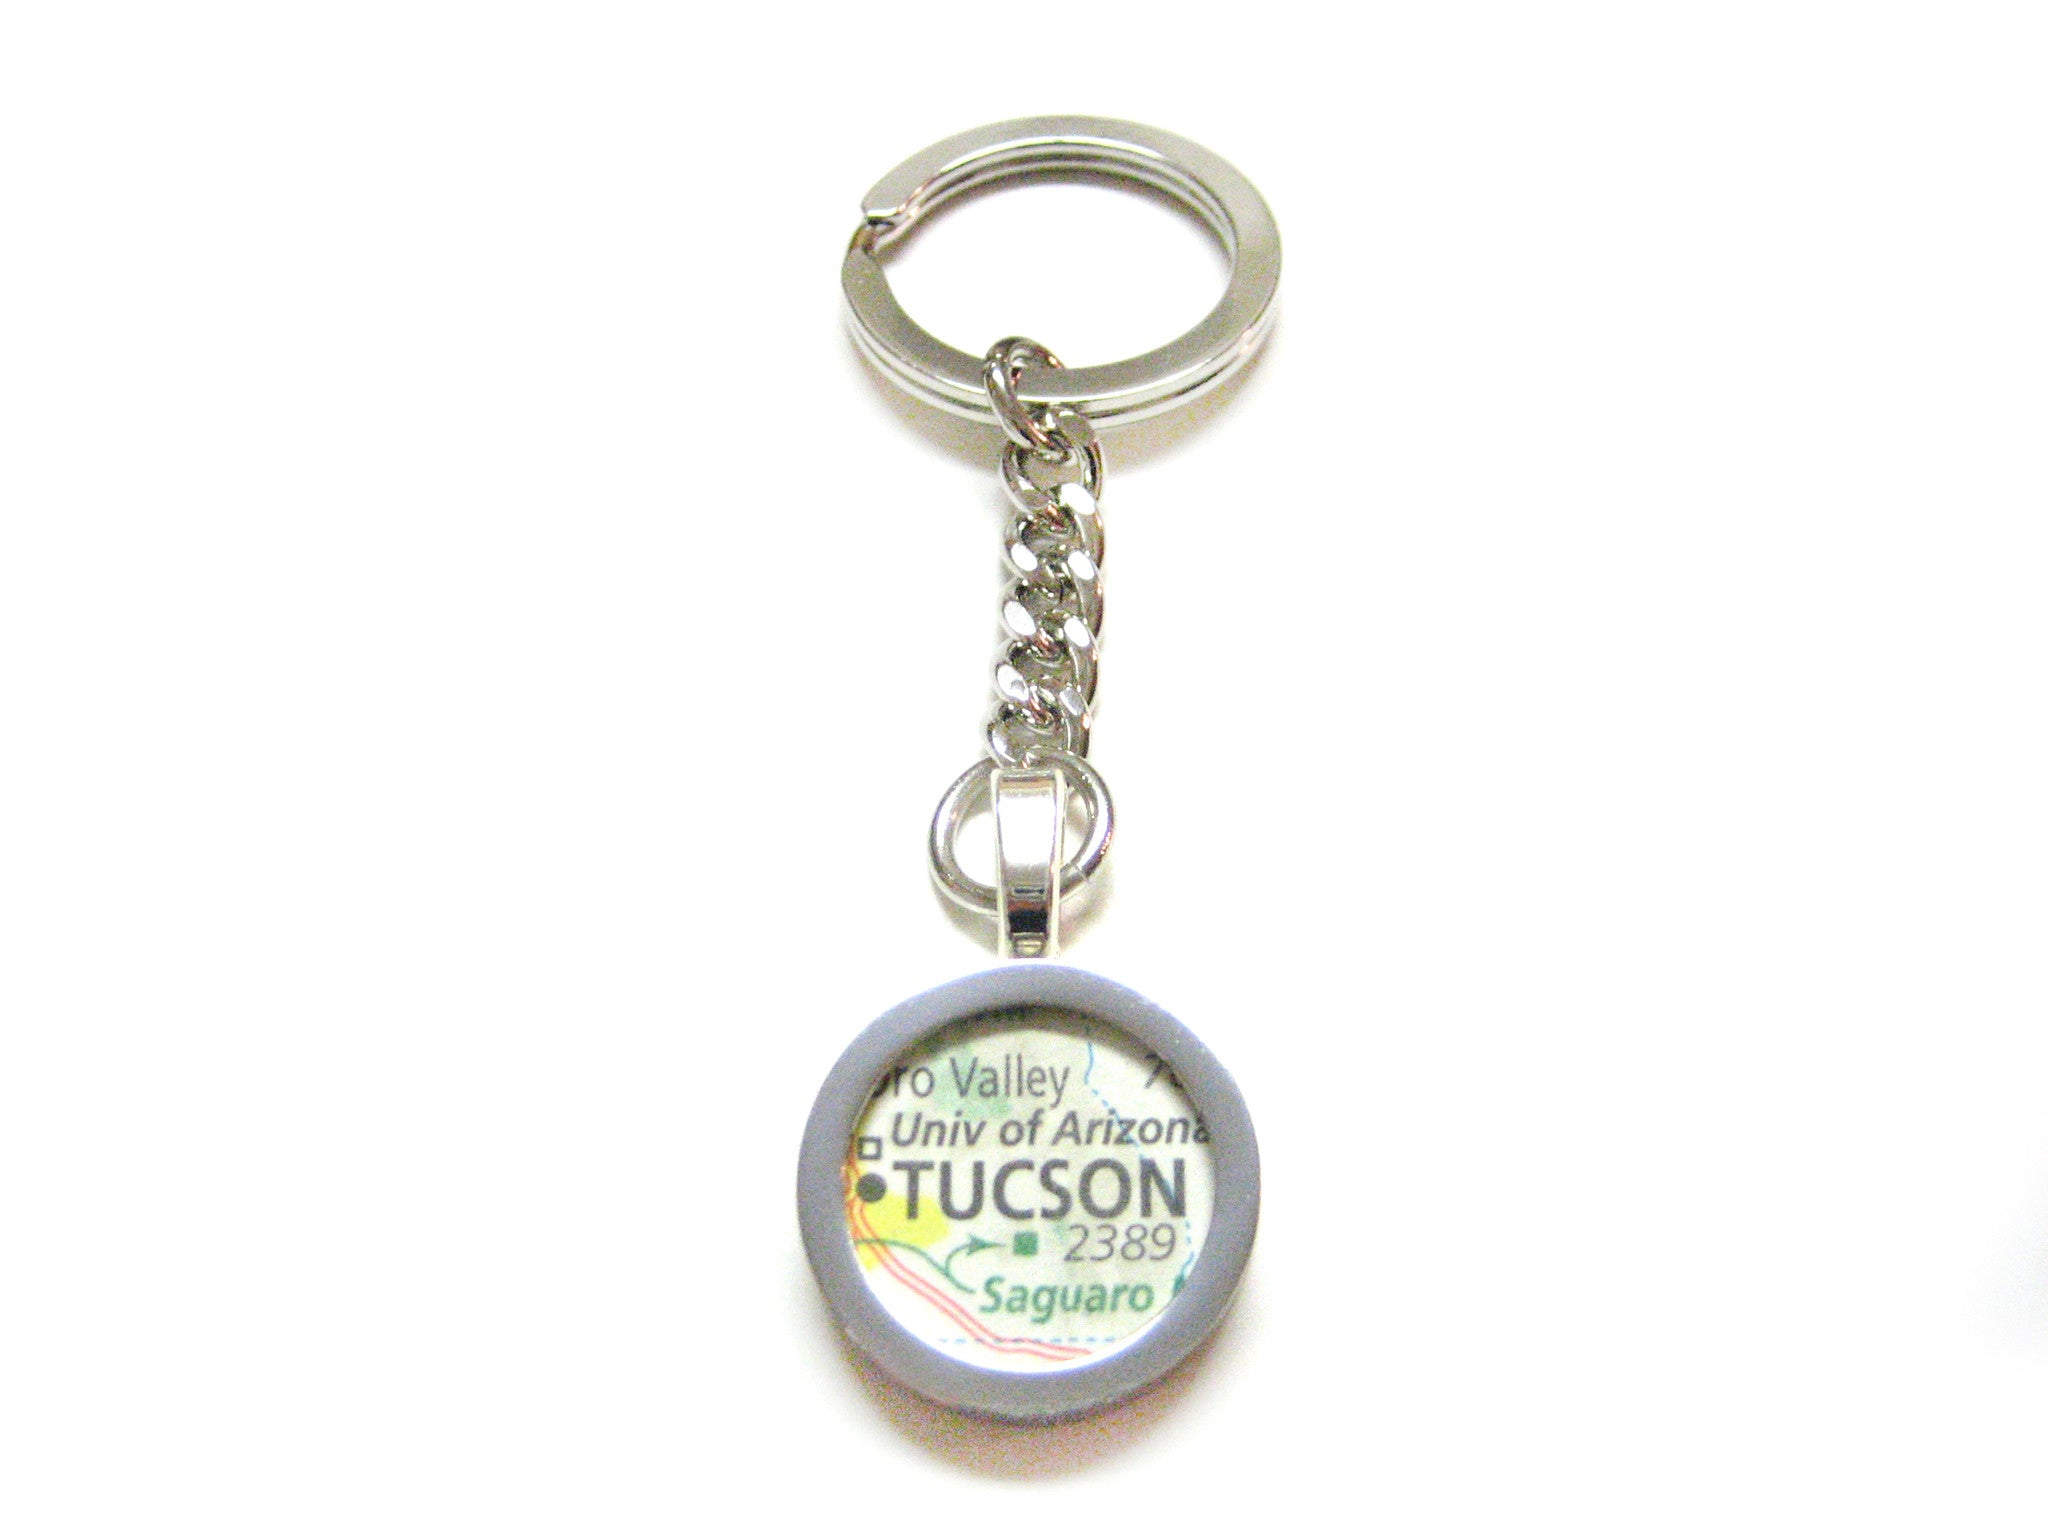 Tucson Arizona Map Pendant Keychain